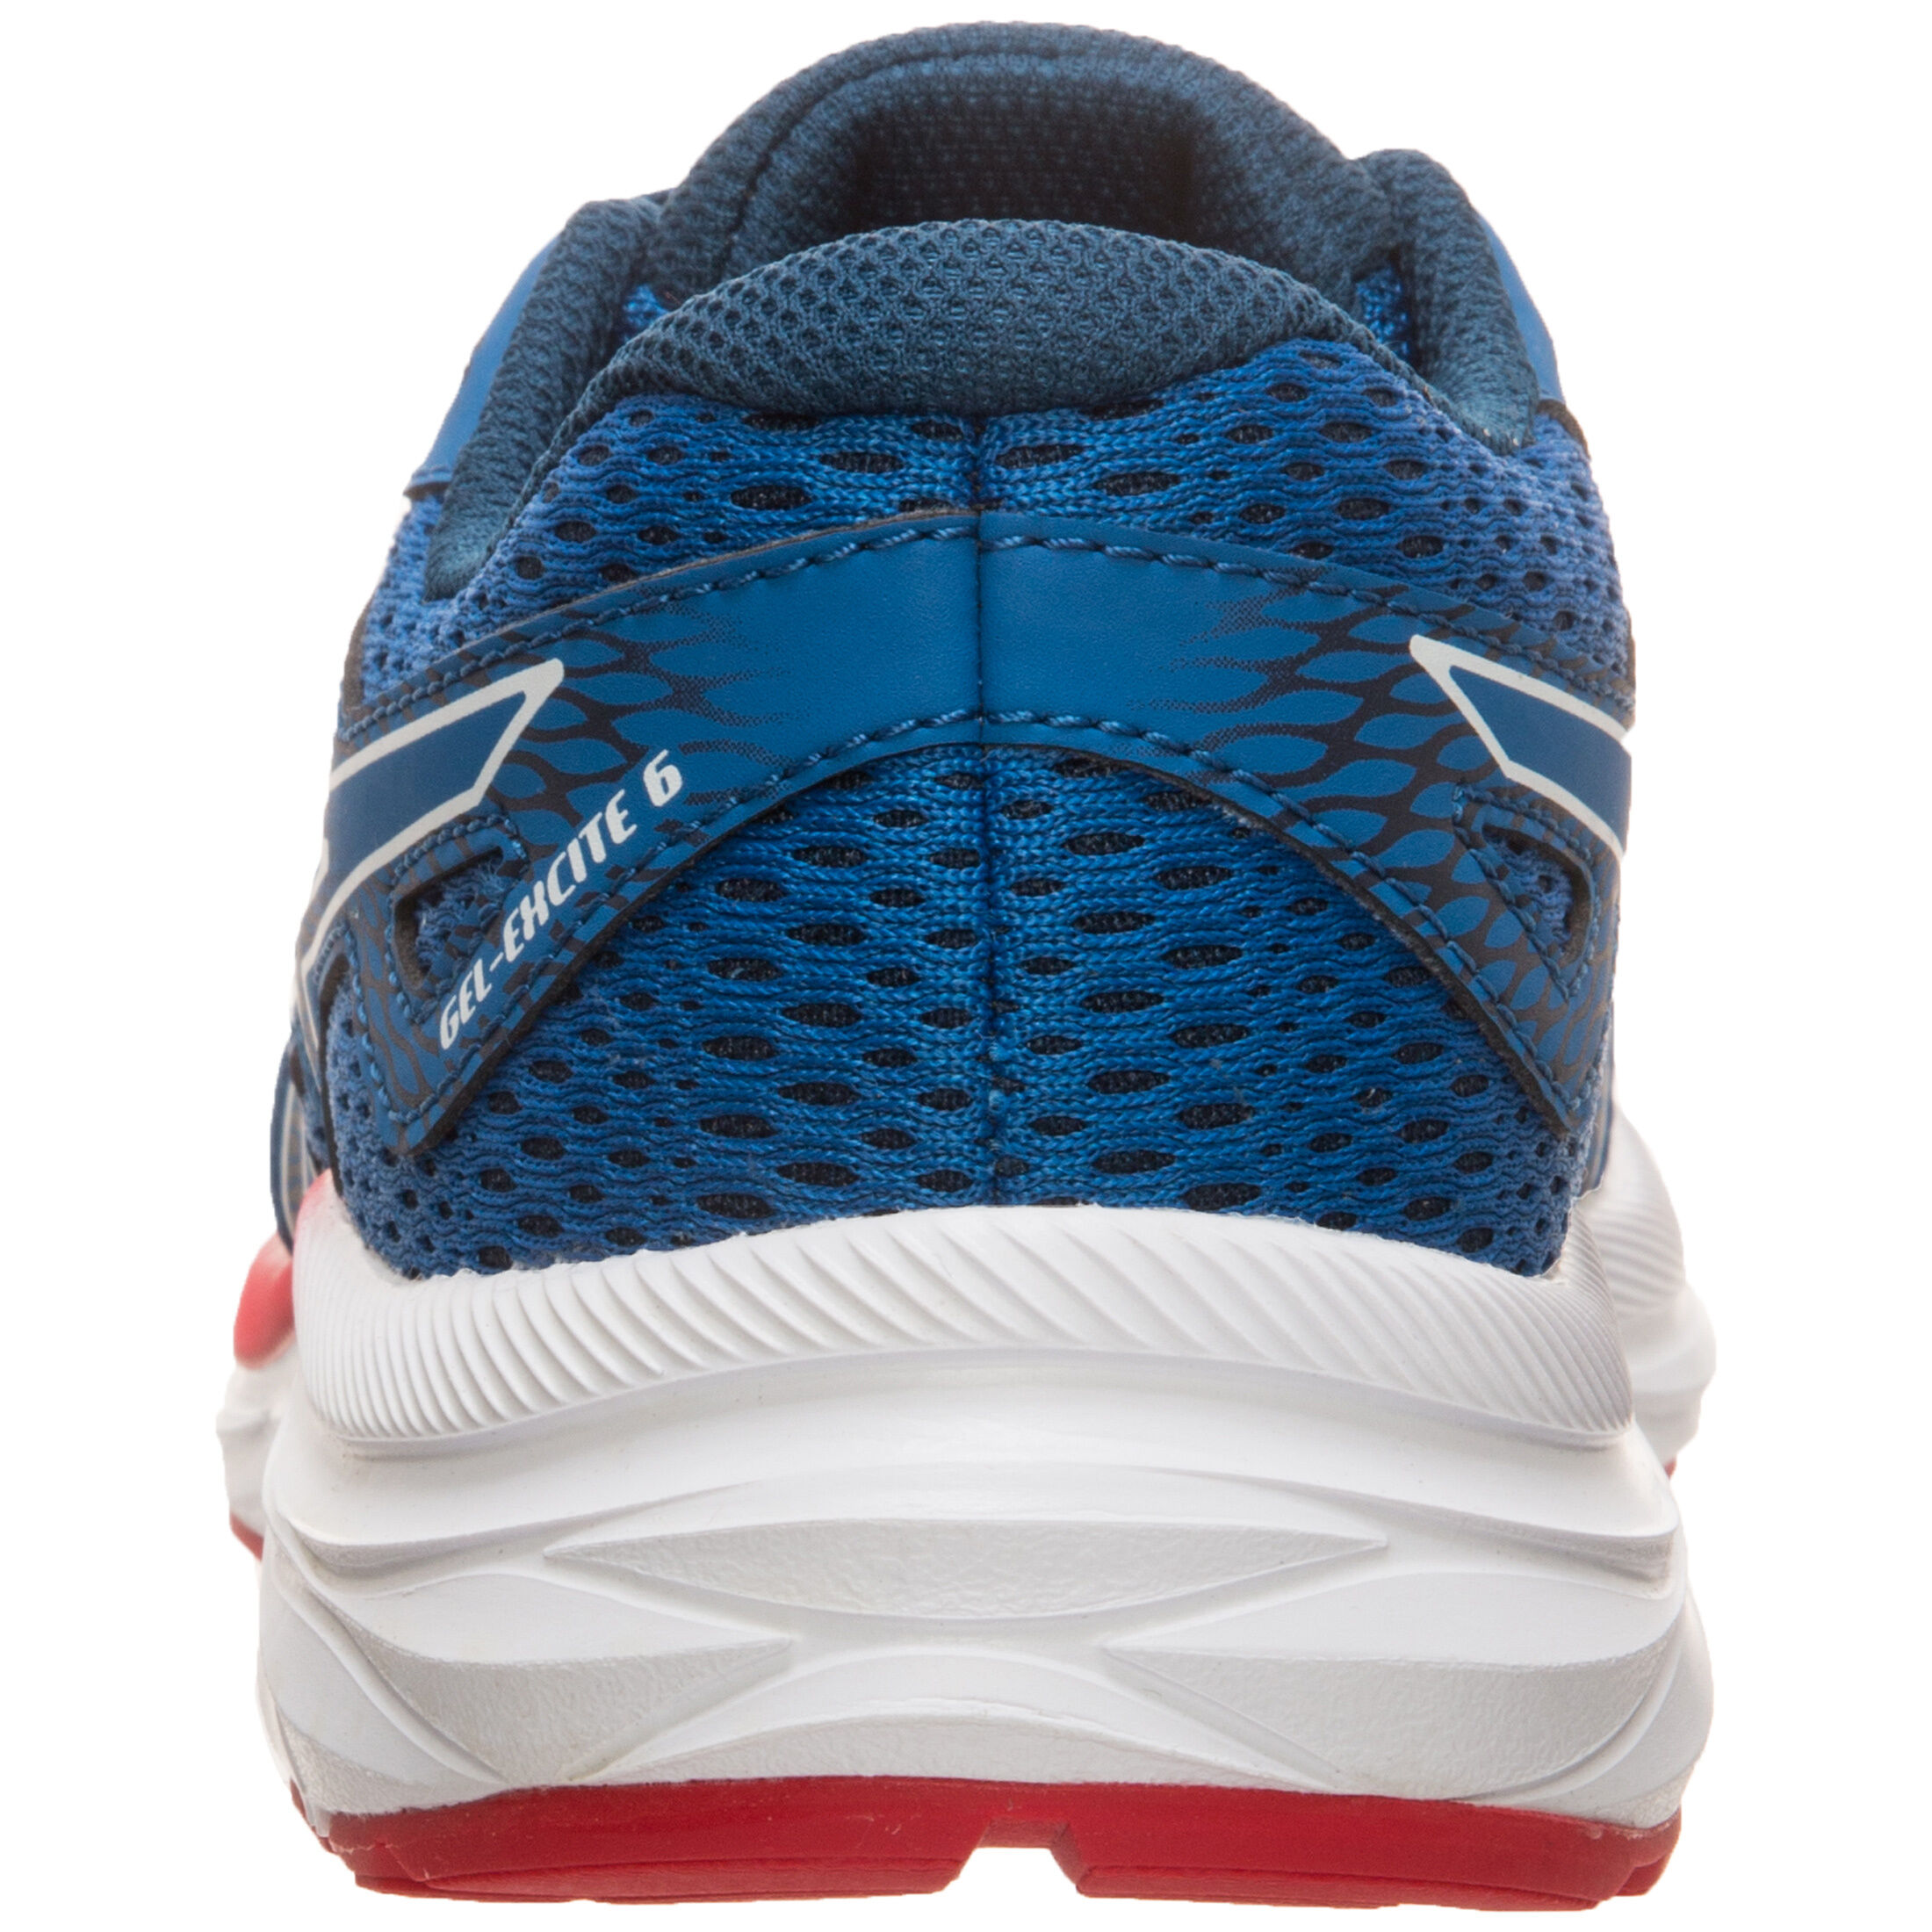 ASICS SportStyle GEL EXCITE 6 GS Laufschuh Kinder bei OUTFITTER